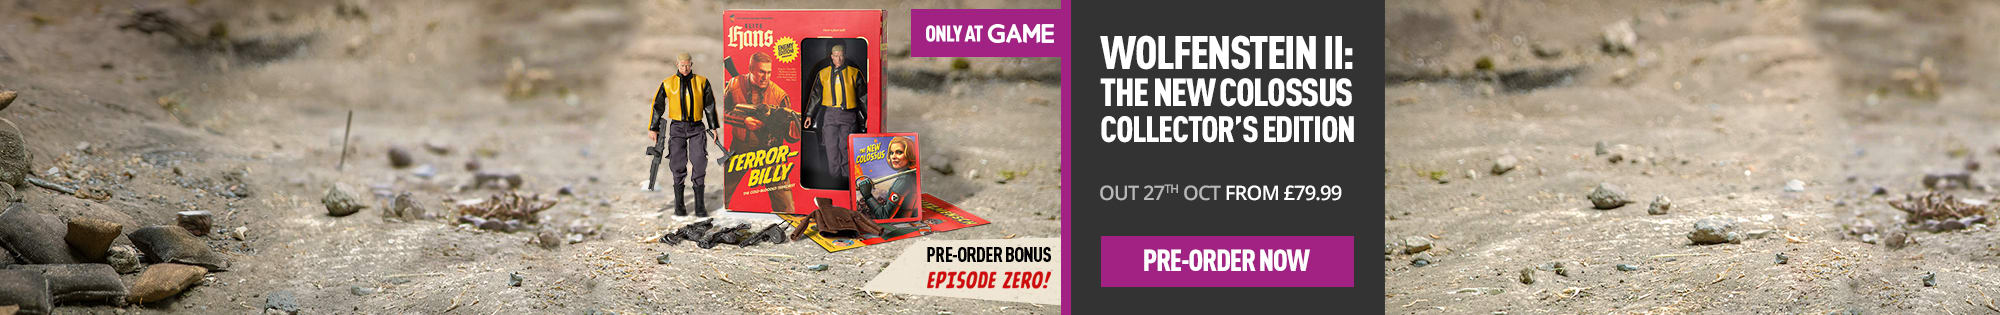 Pre-order Wolfenstein II Collector's Edition - Only at GAME.co.uk - Homepage banner